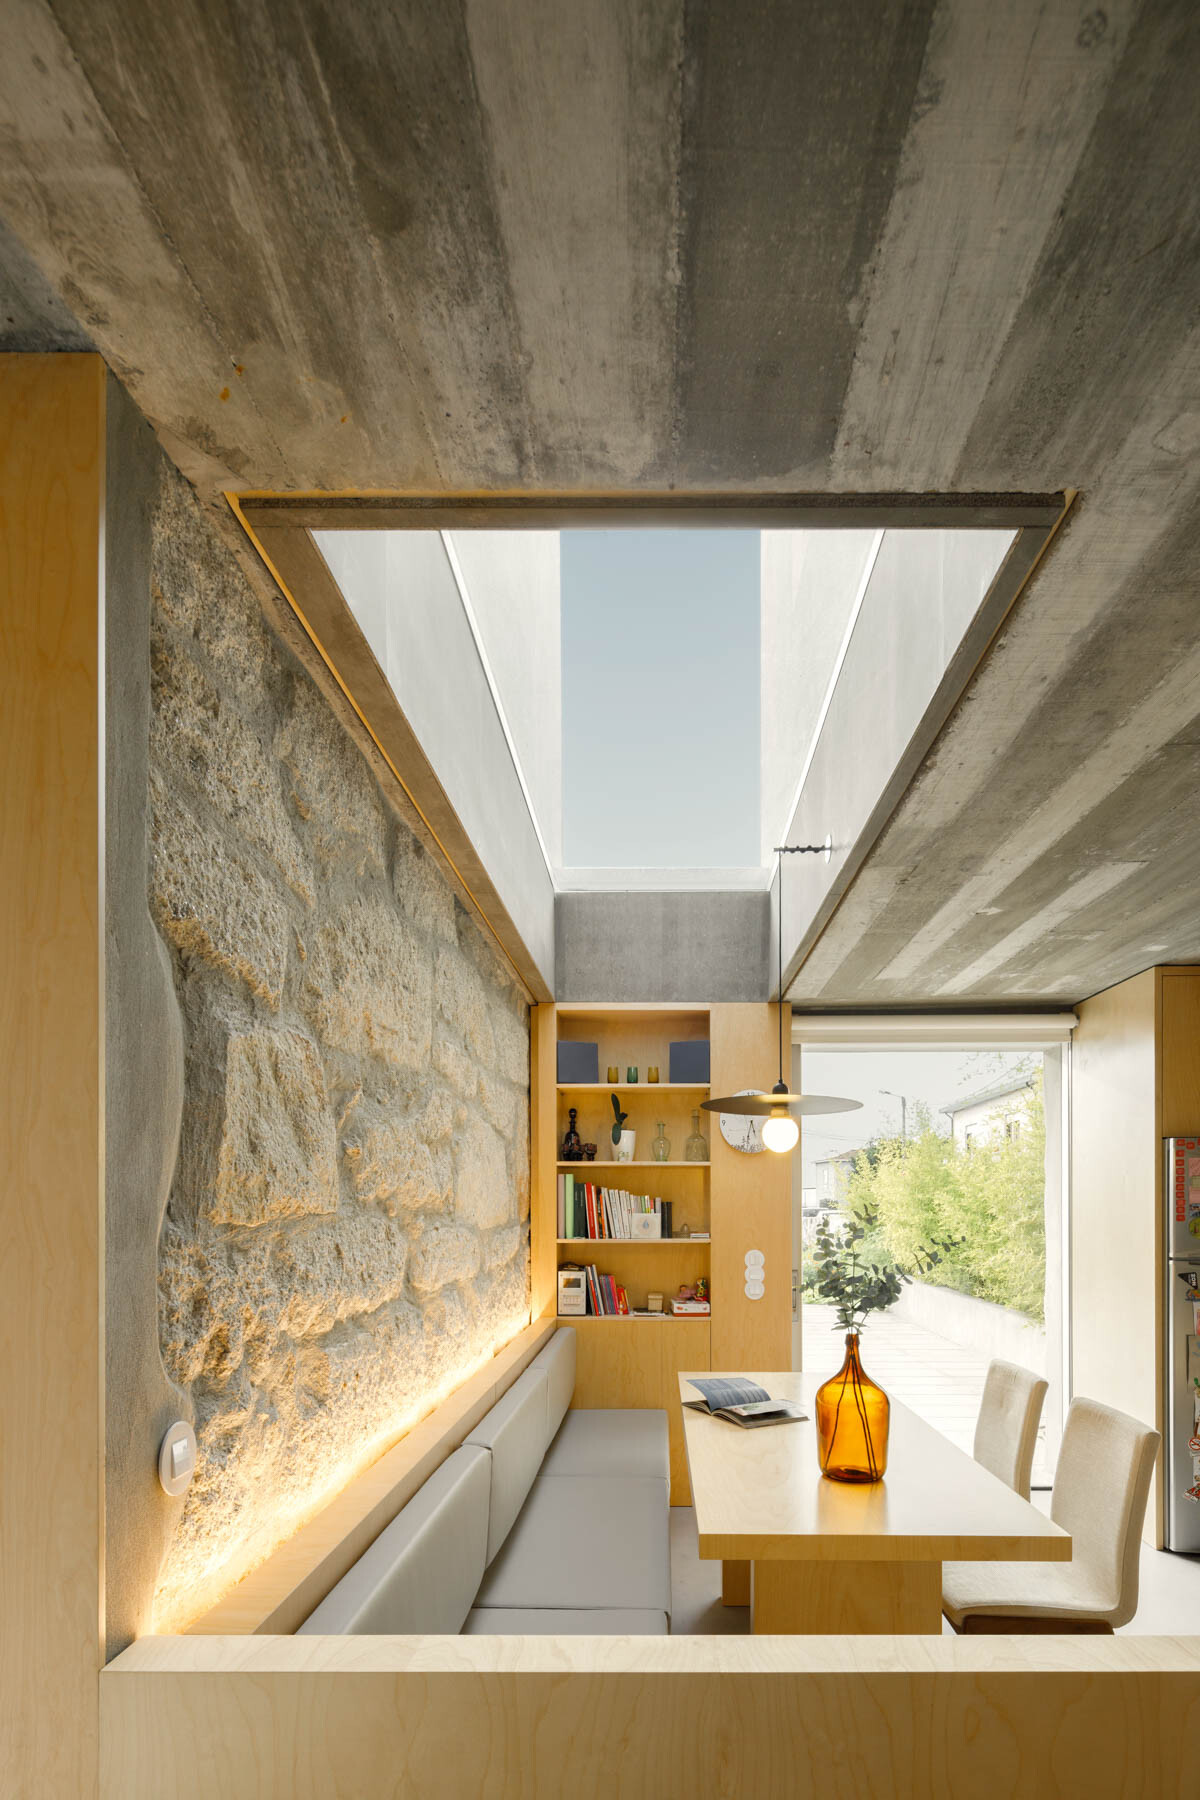 13_Casa-Rio_Paulo-Merlini-Architects_Inspirationist